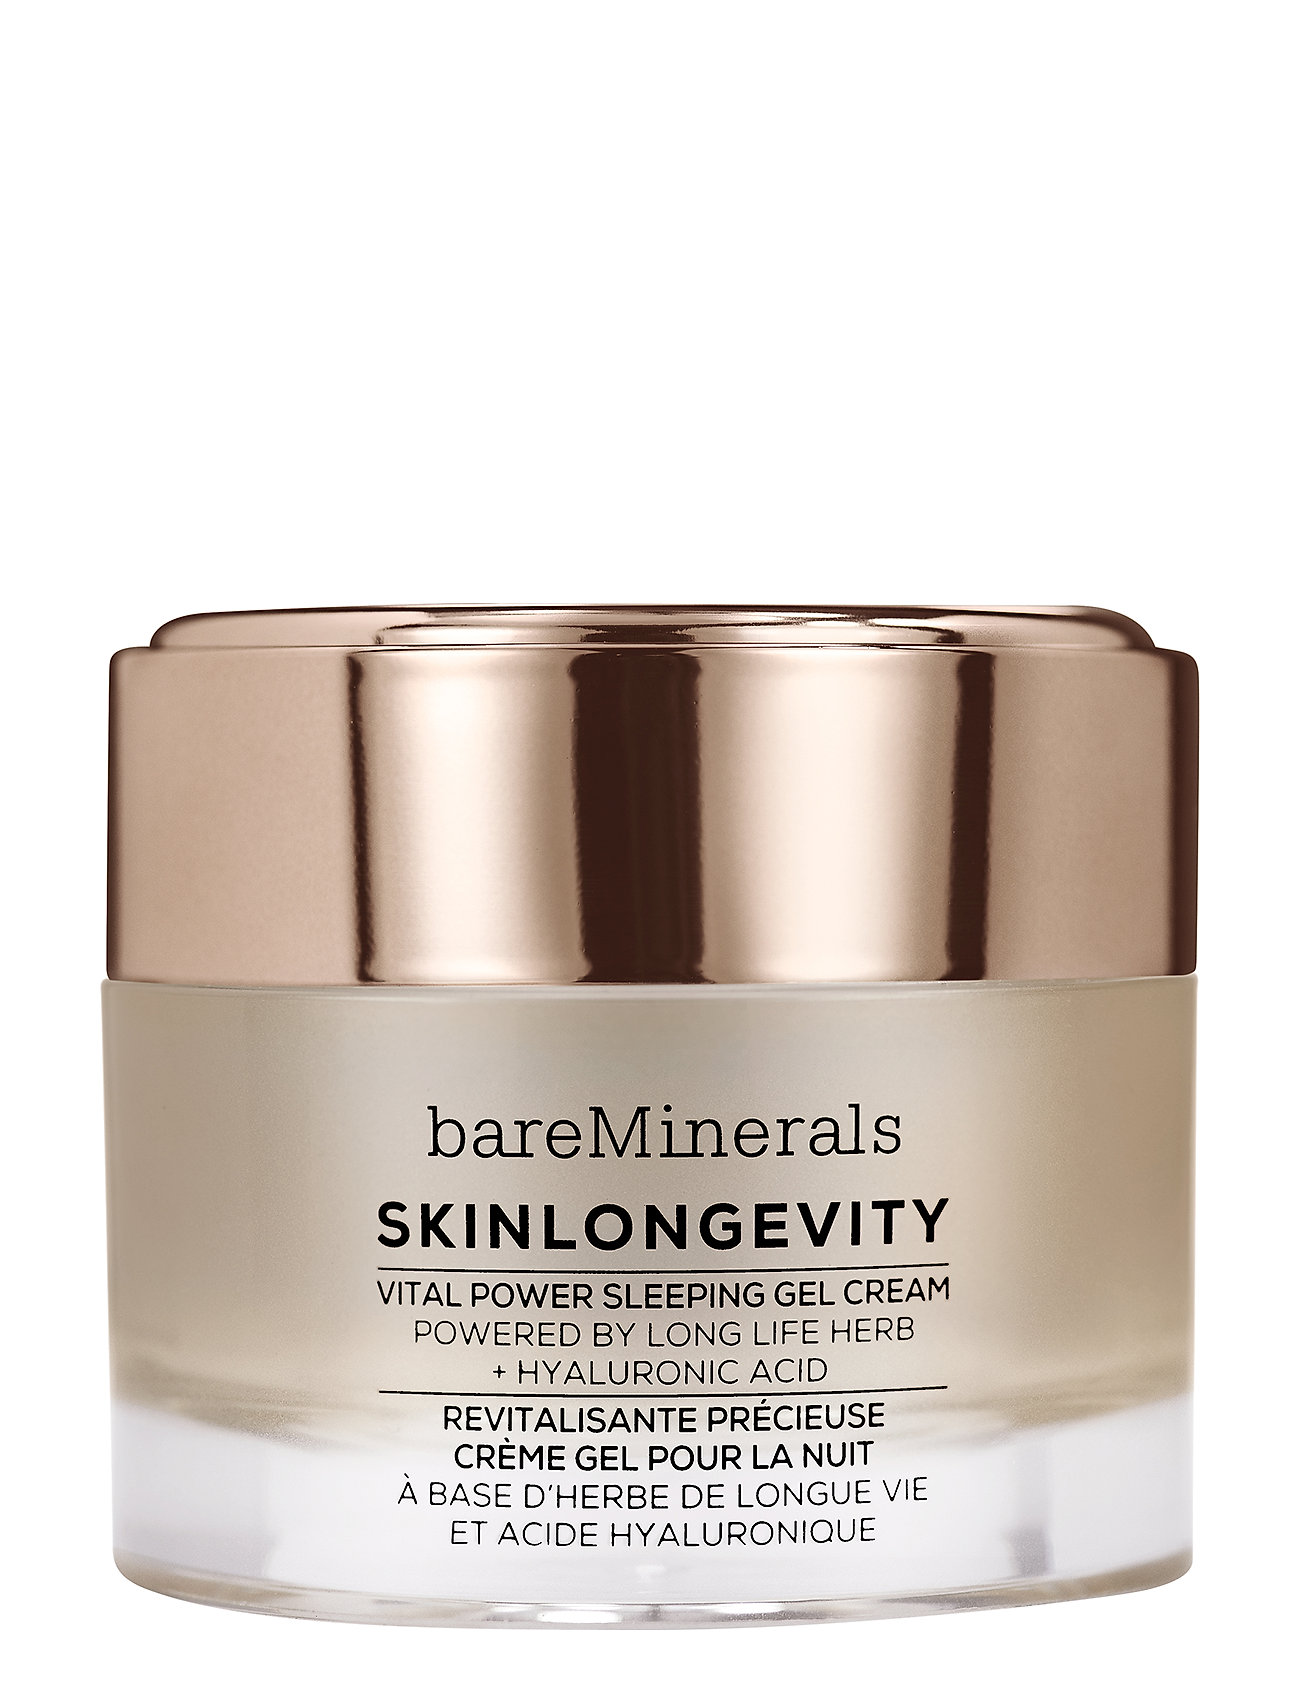 Image of Skinlongevity™ Vital Power Sleeping Gel Cream Beauty WOMEN Skin Care Face Night Cream Nude BareMinerals (3410527049)